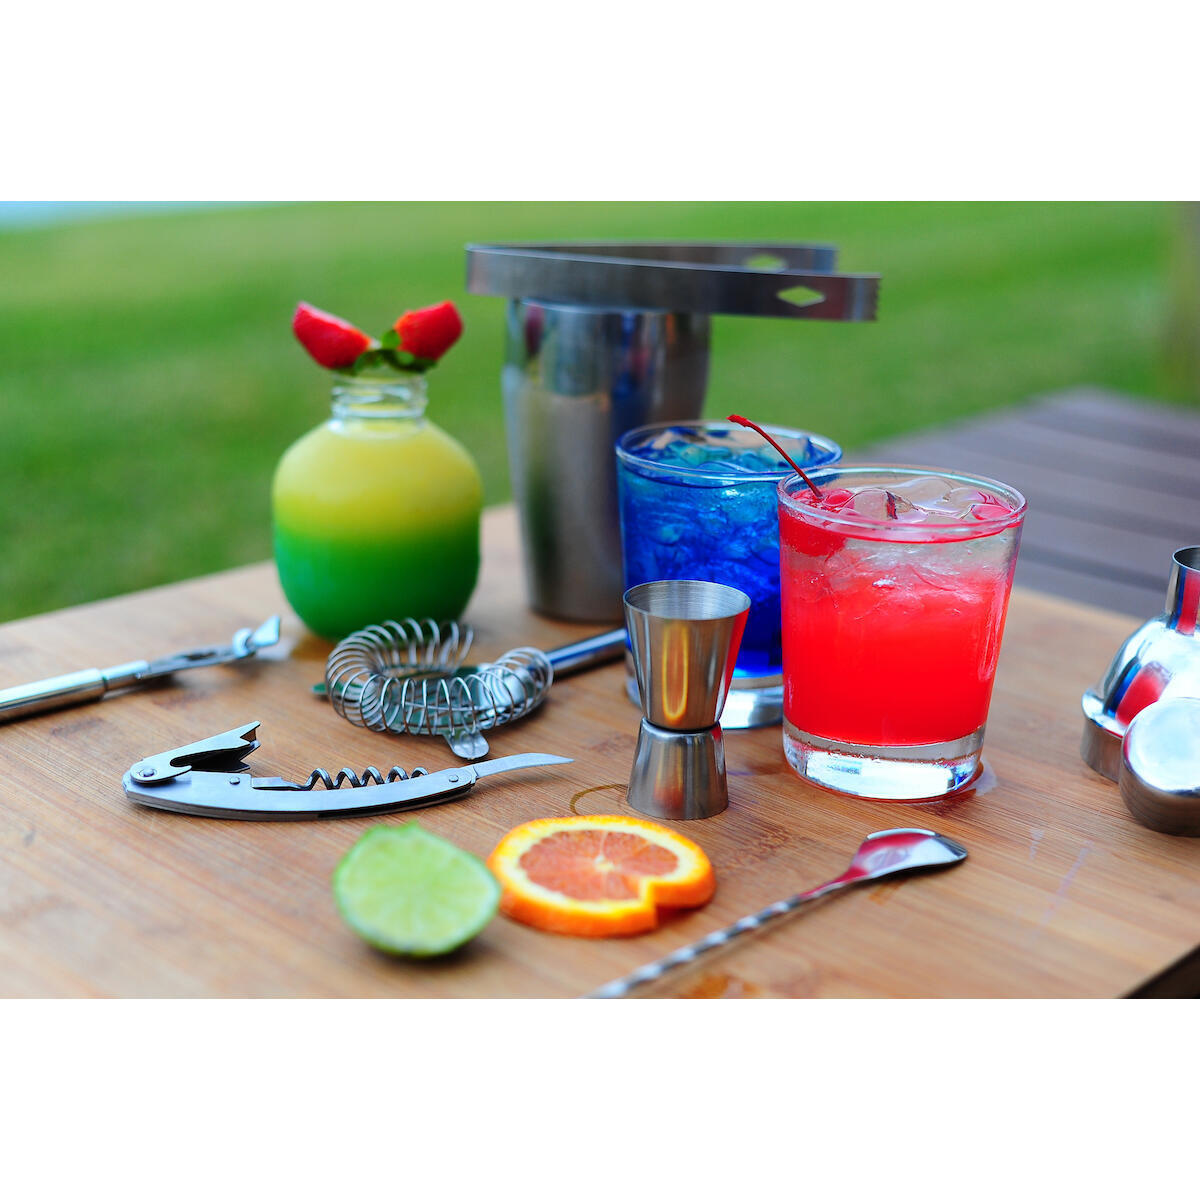 Taylor & Sons 9 piece Stainless Steel Cocktail Shaker Bartender Kit